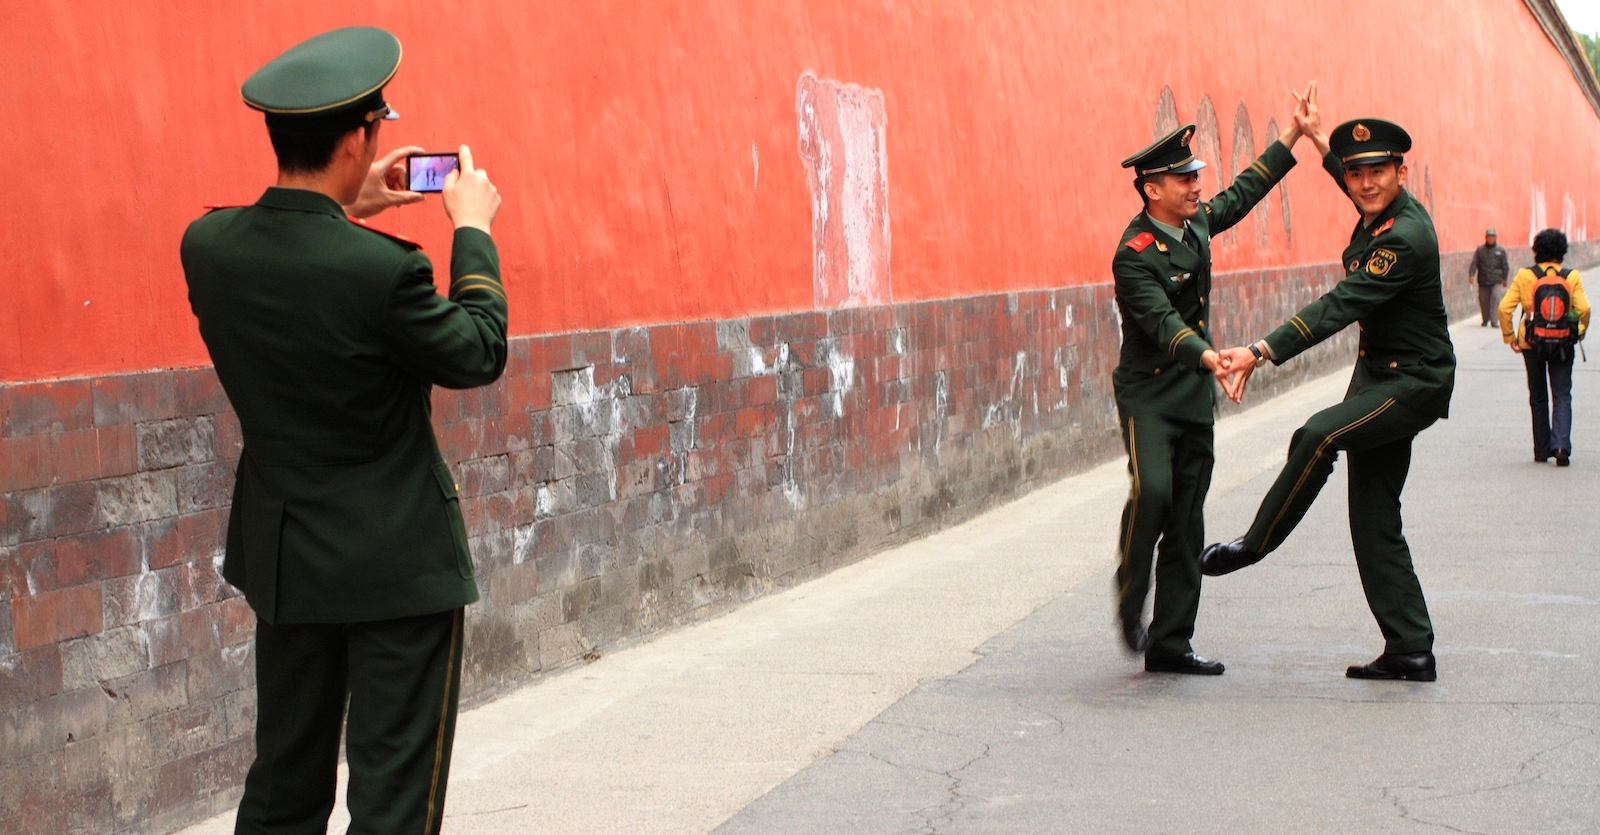 Chinese Army soldiers in Beijing (Photo: Kalexander/Flickr)